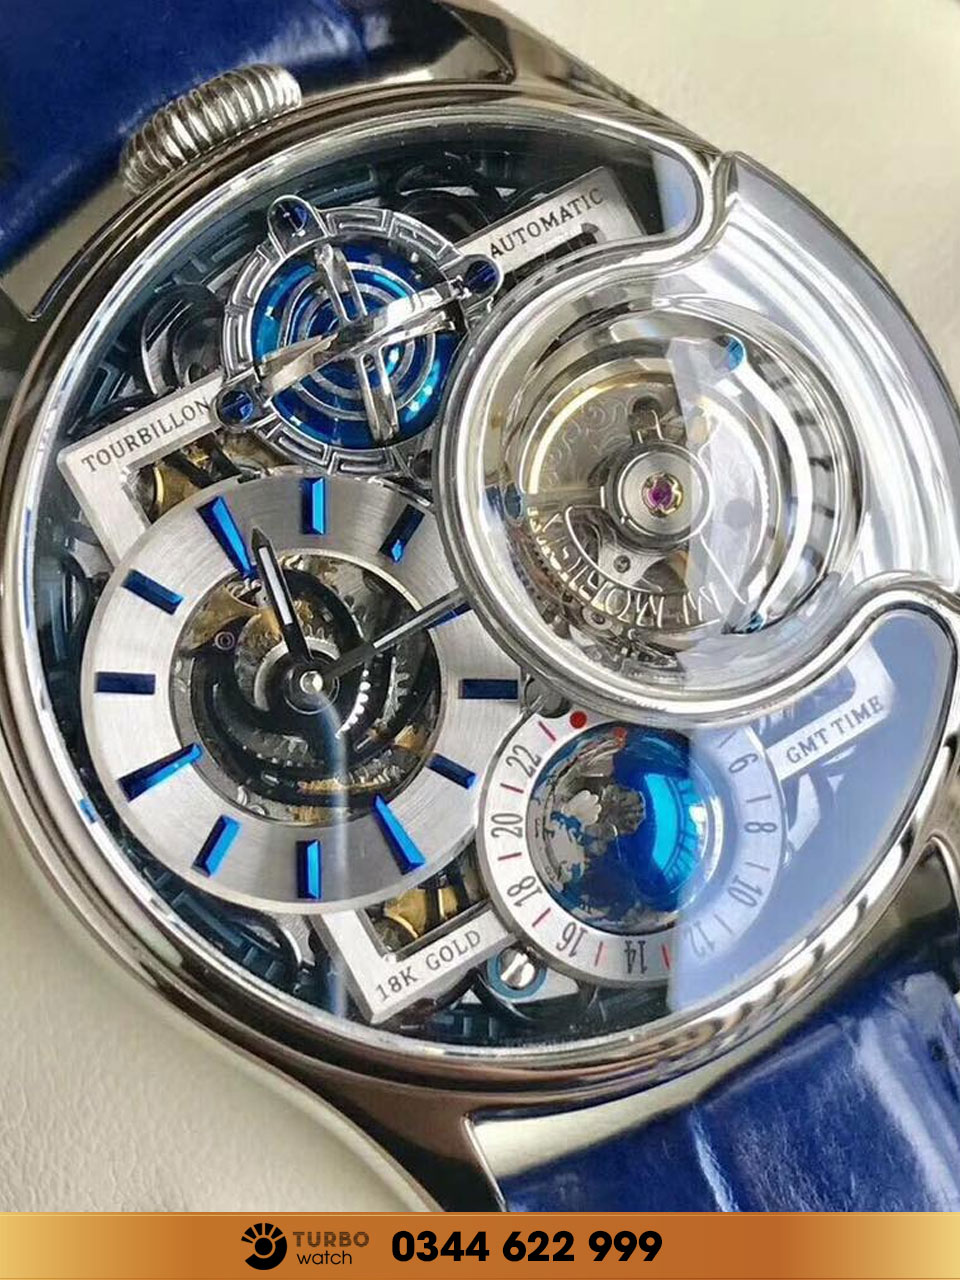 Memorigin Watch Tourbillon Imperial Stellar